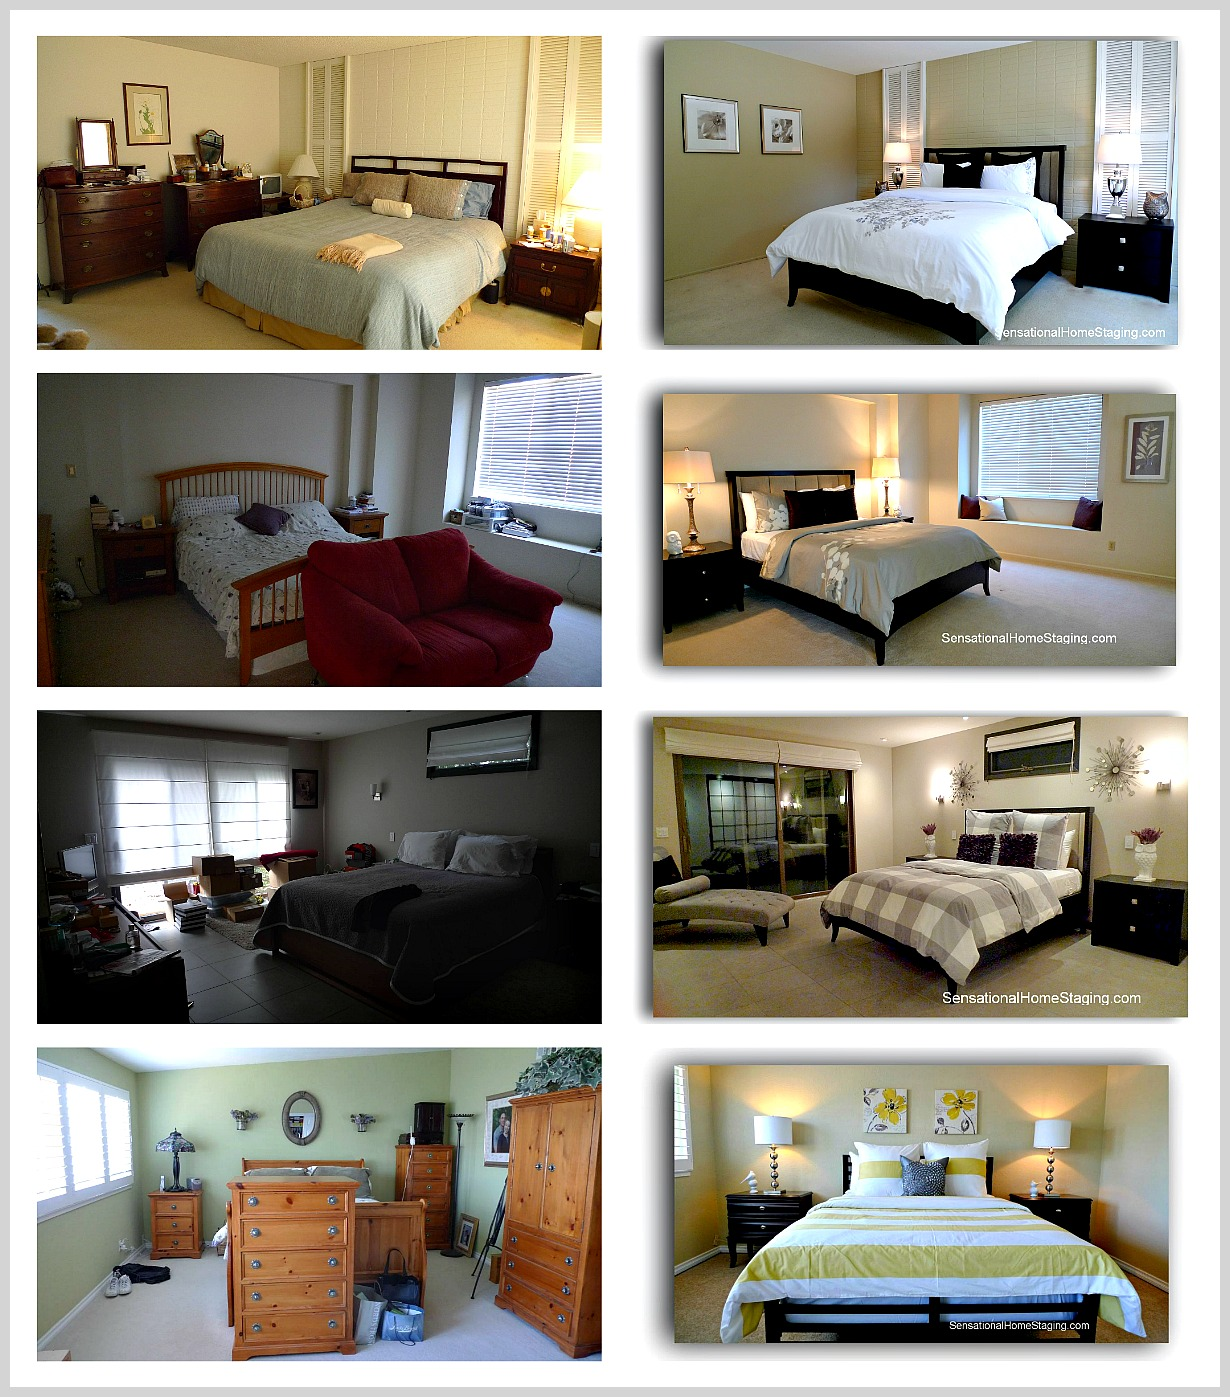 Ribbet collage-Bedrooms-Blog